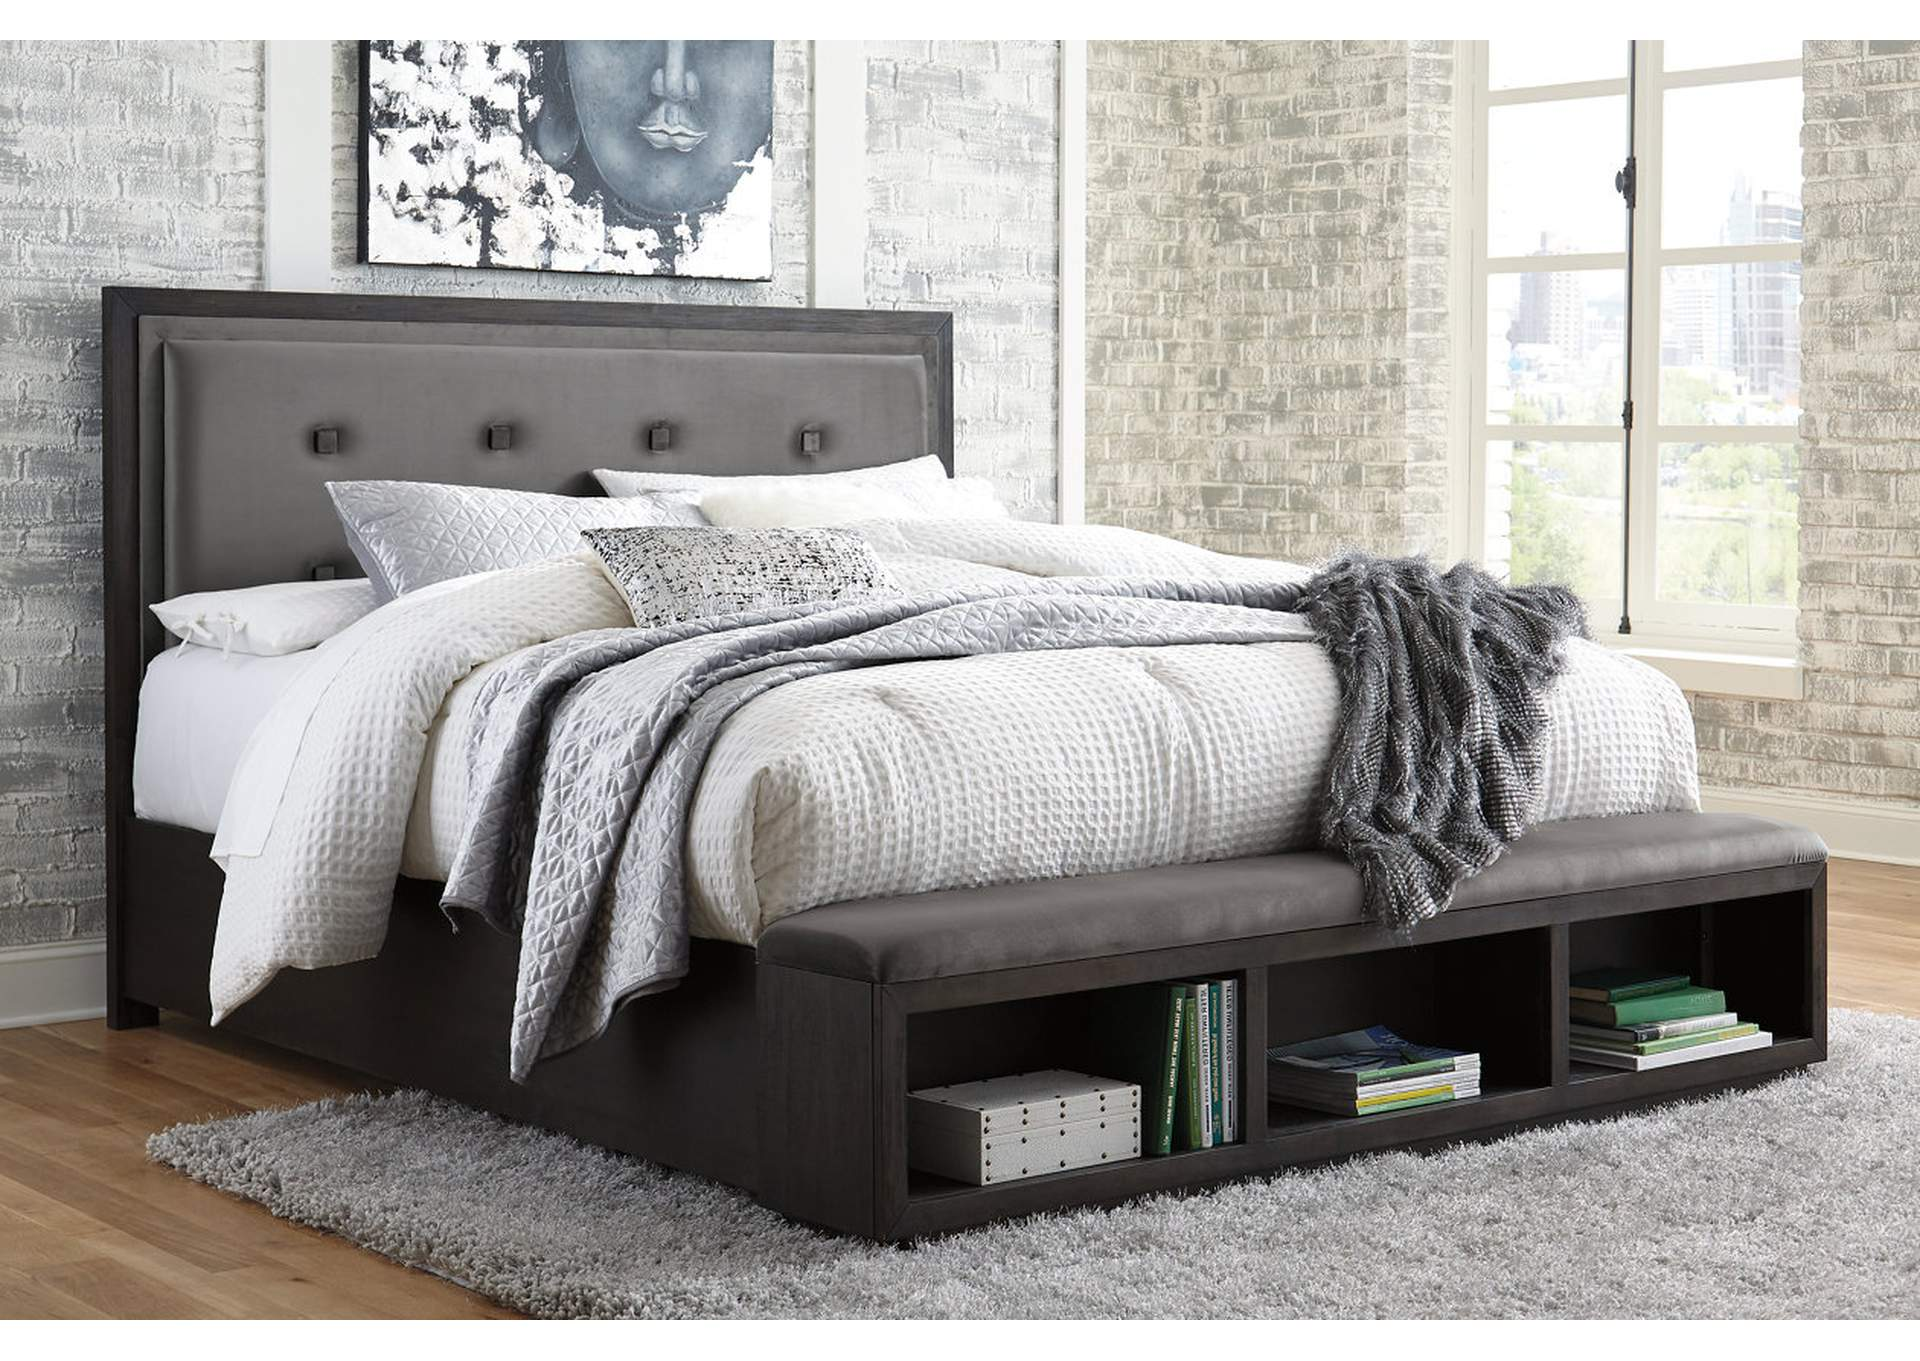 Hyndell California King Upholstered Panel Bed with Storage,Signature Design By Ashley